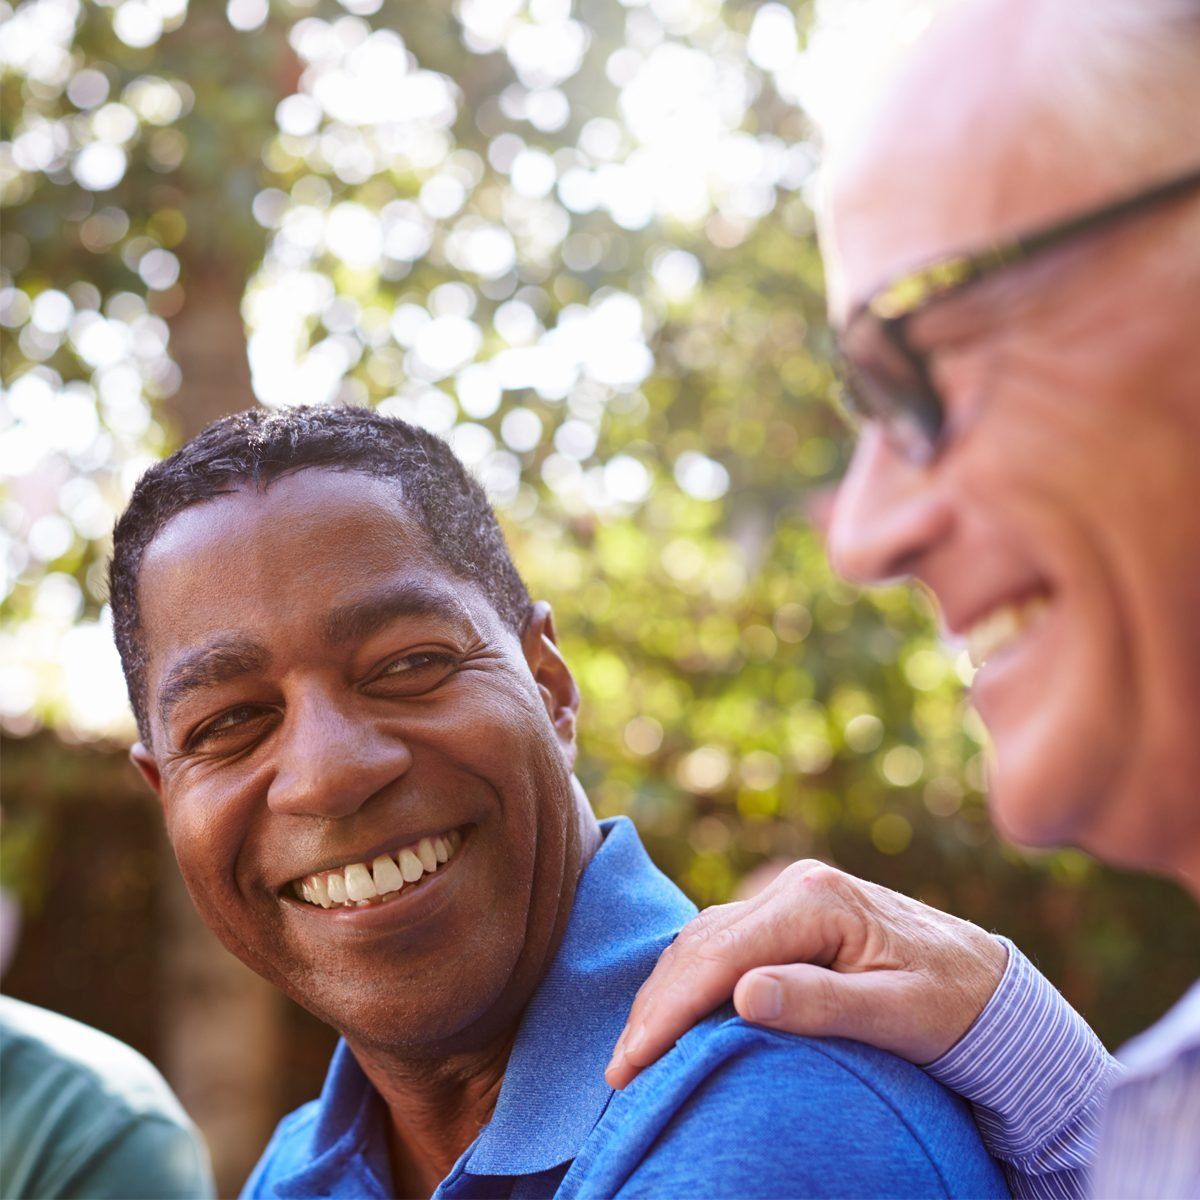 Mature Male Friends Socializing In Backyard Together; Shutterstock ID 583329769; Requestor Name: Morgan Beard; Requesting Department: Brand; Project Name/ Description: Photo Library; Use: Internal/External/Both: Both